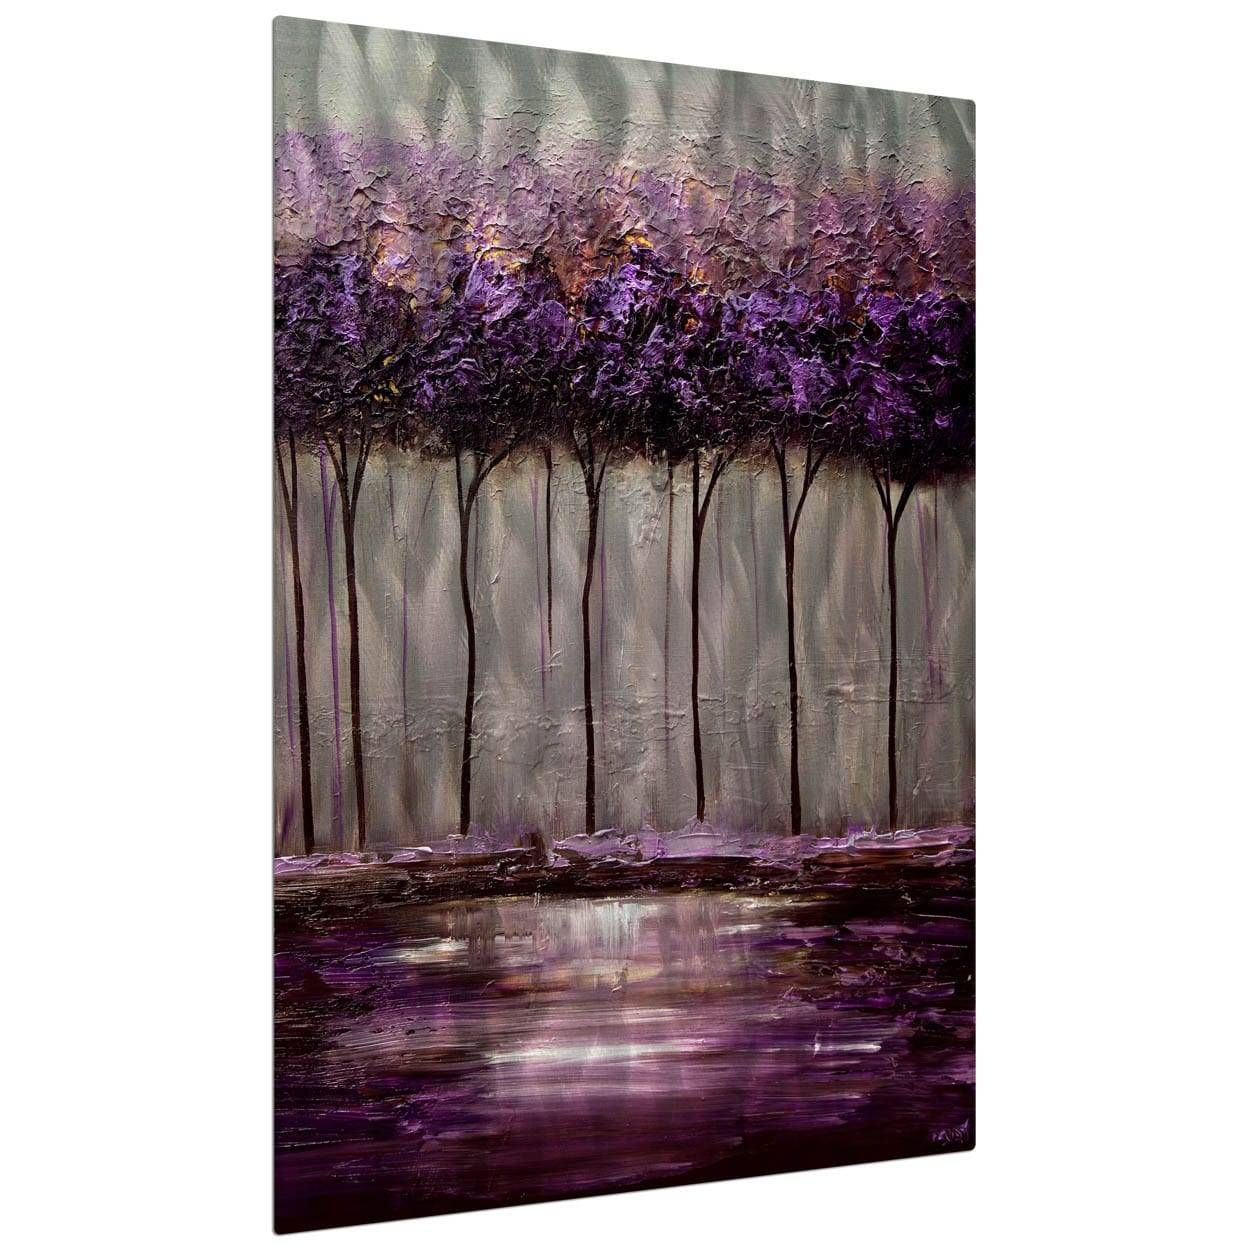 Osnat 'purple Scent 1' Metal Wall Art – Free Shipping Today For Recent Overstock Metal Wall Art (View 4 of 20)